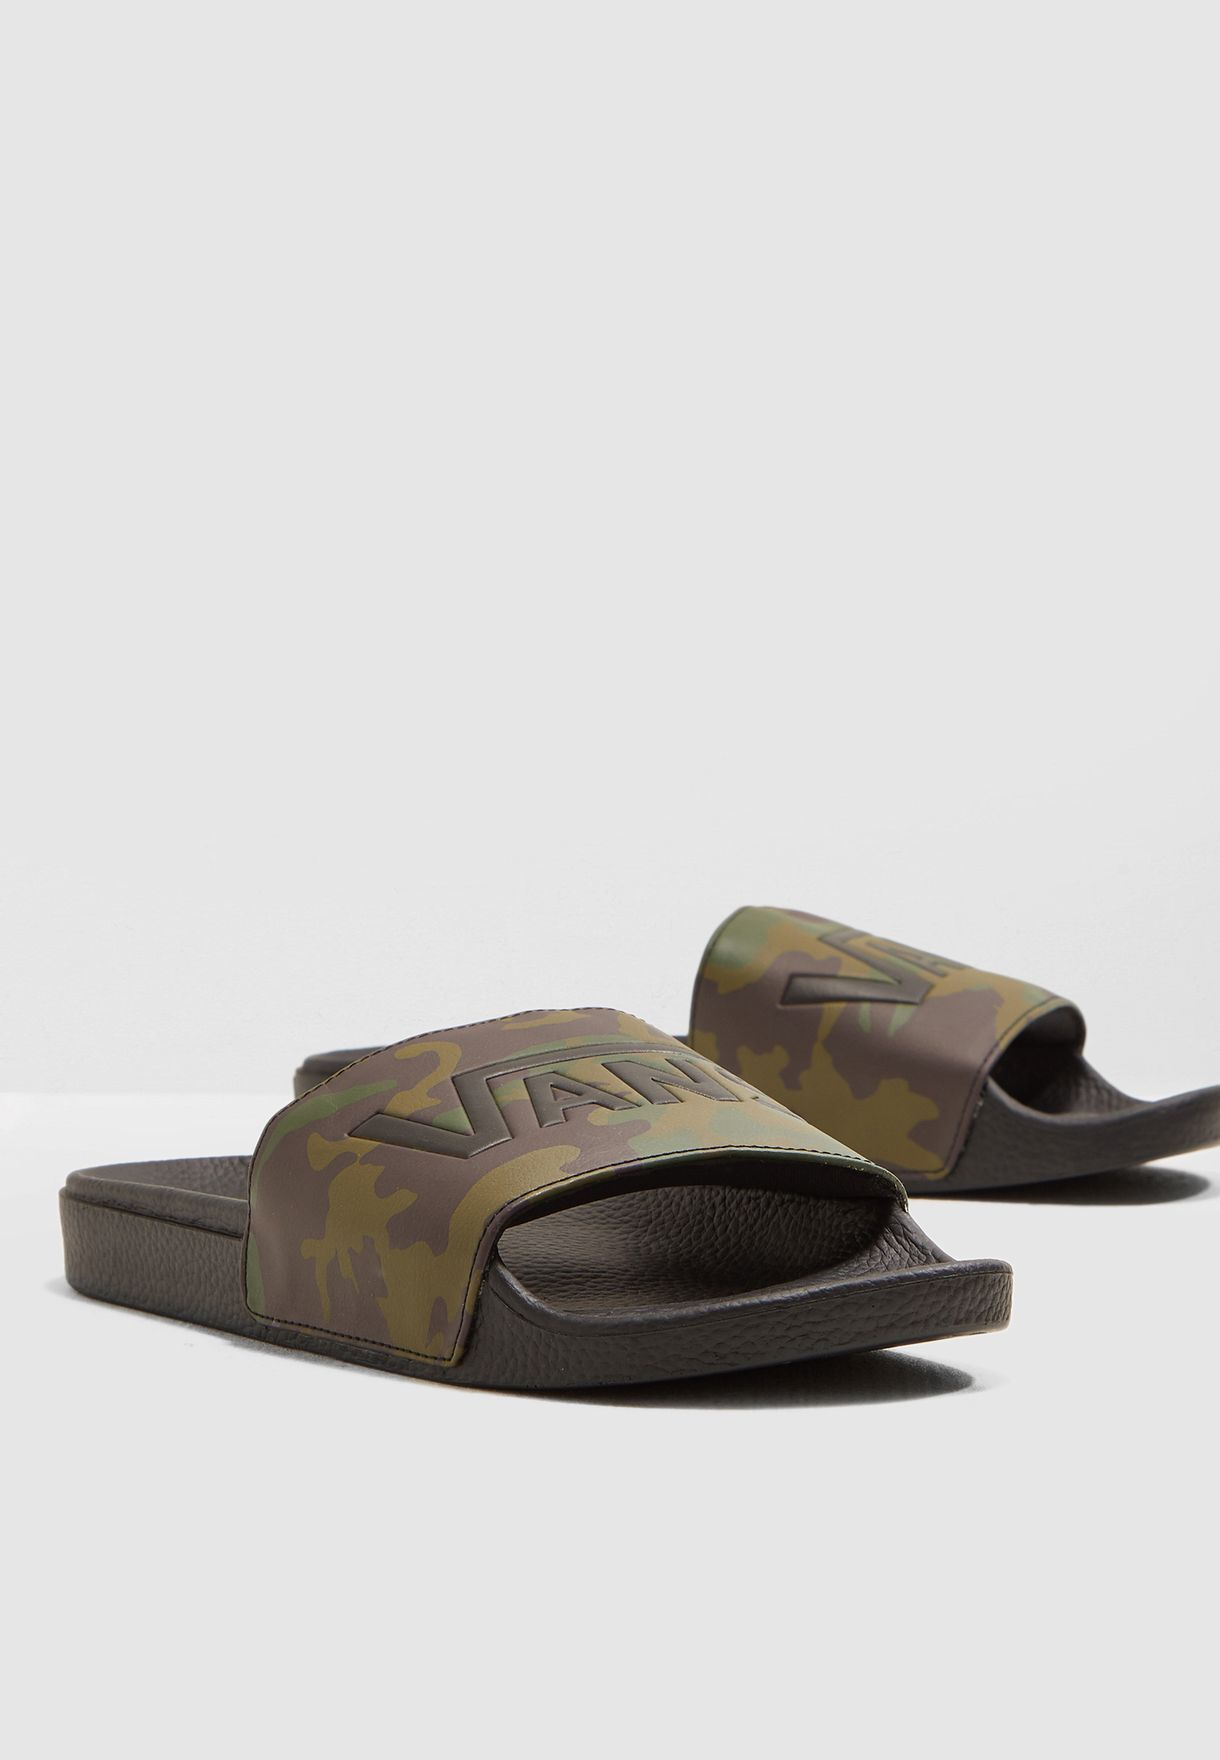 0d9e1e99c Shop Vans prints Camo Slide-On 5JEVFY for Men in UAE - 88072SH48IQP